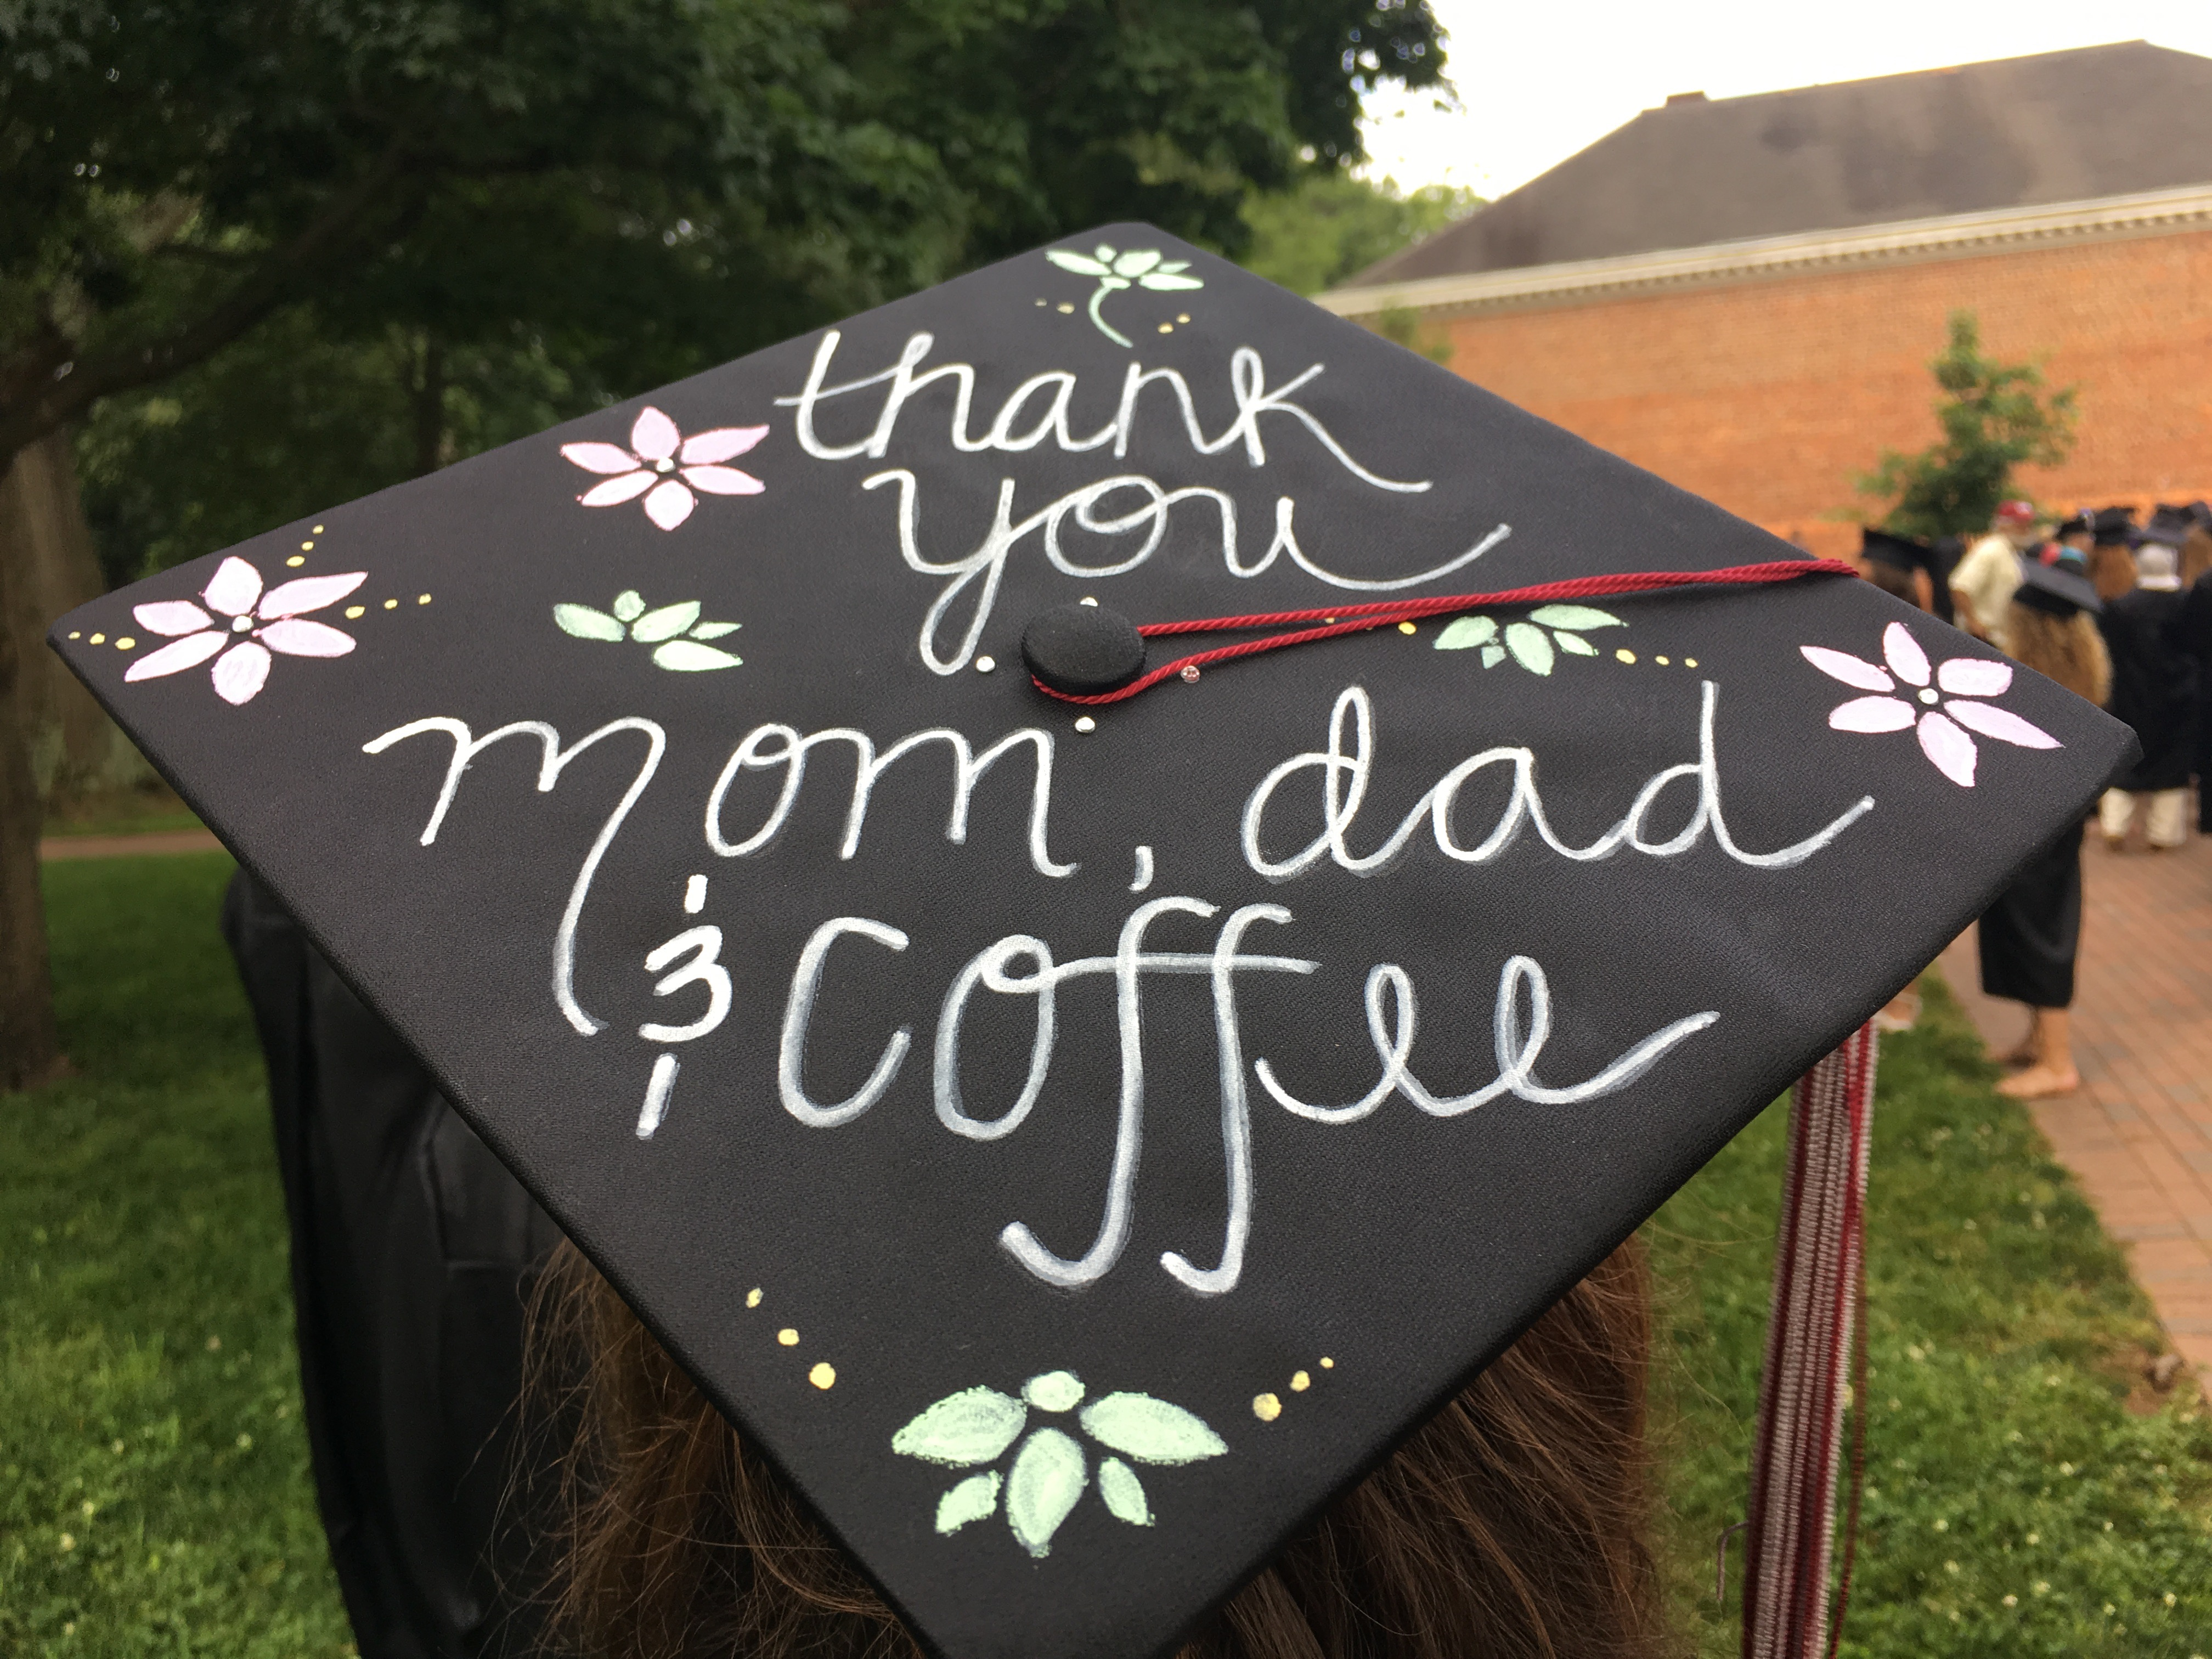 This decorated graduation cap says it all.